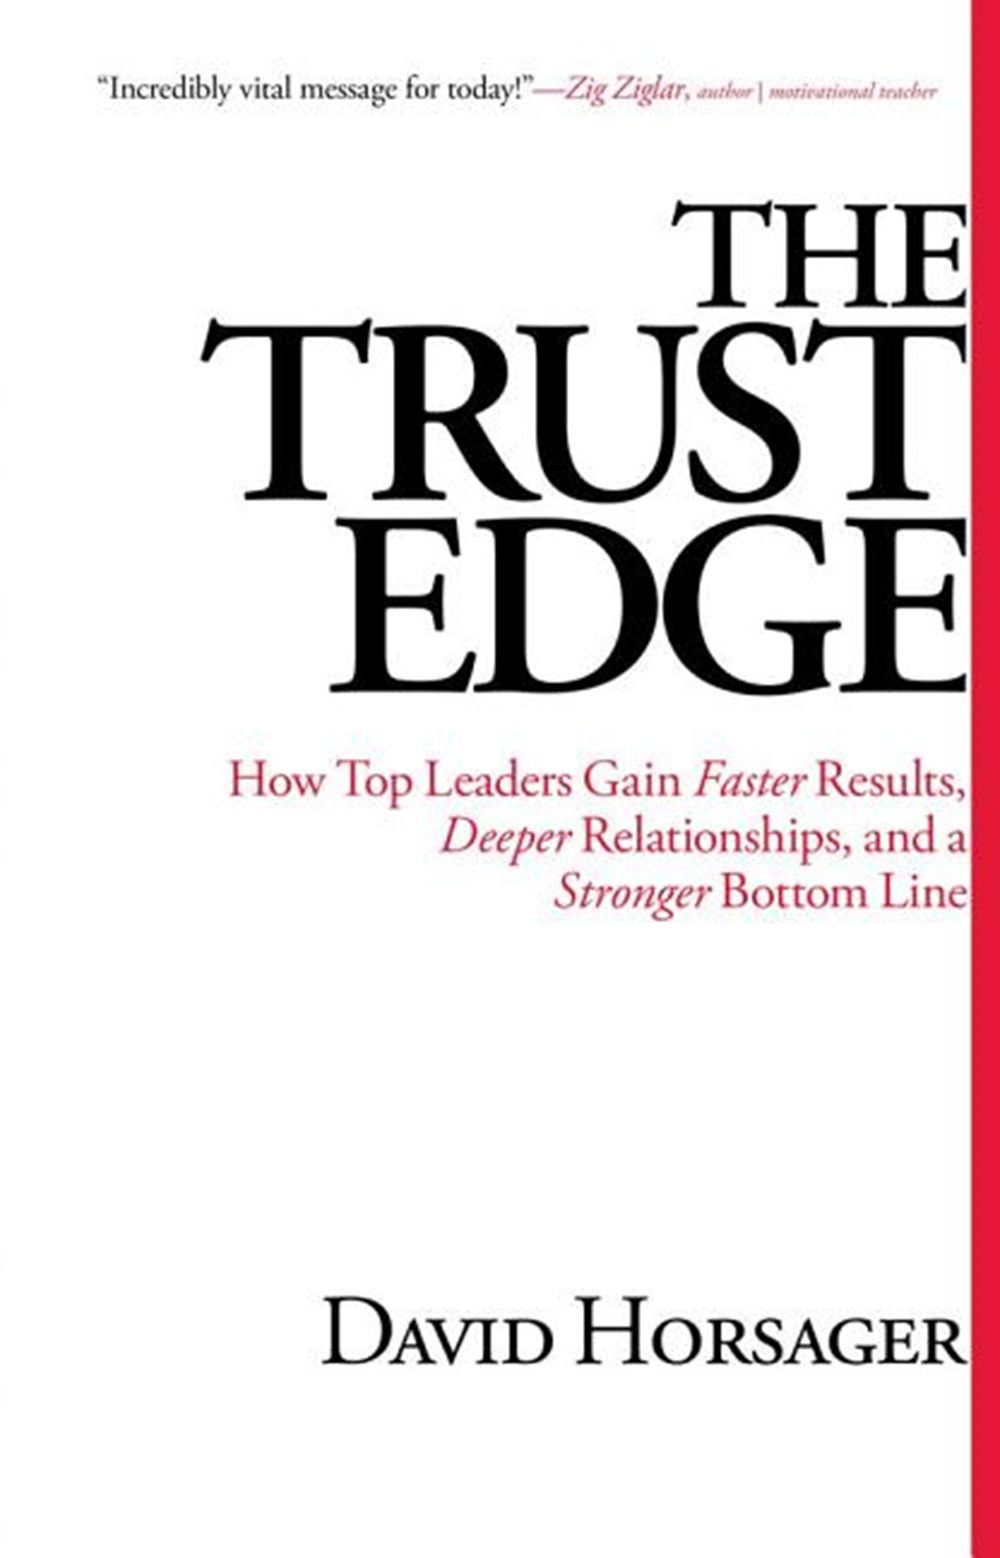 Trust Edge How Top Leaders Gain Faster Results, Deeper Relationships, and a Stronger Bottom Line